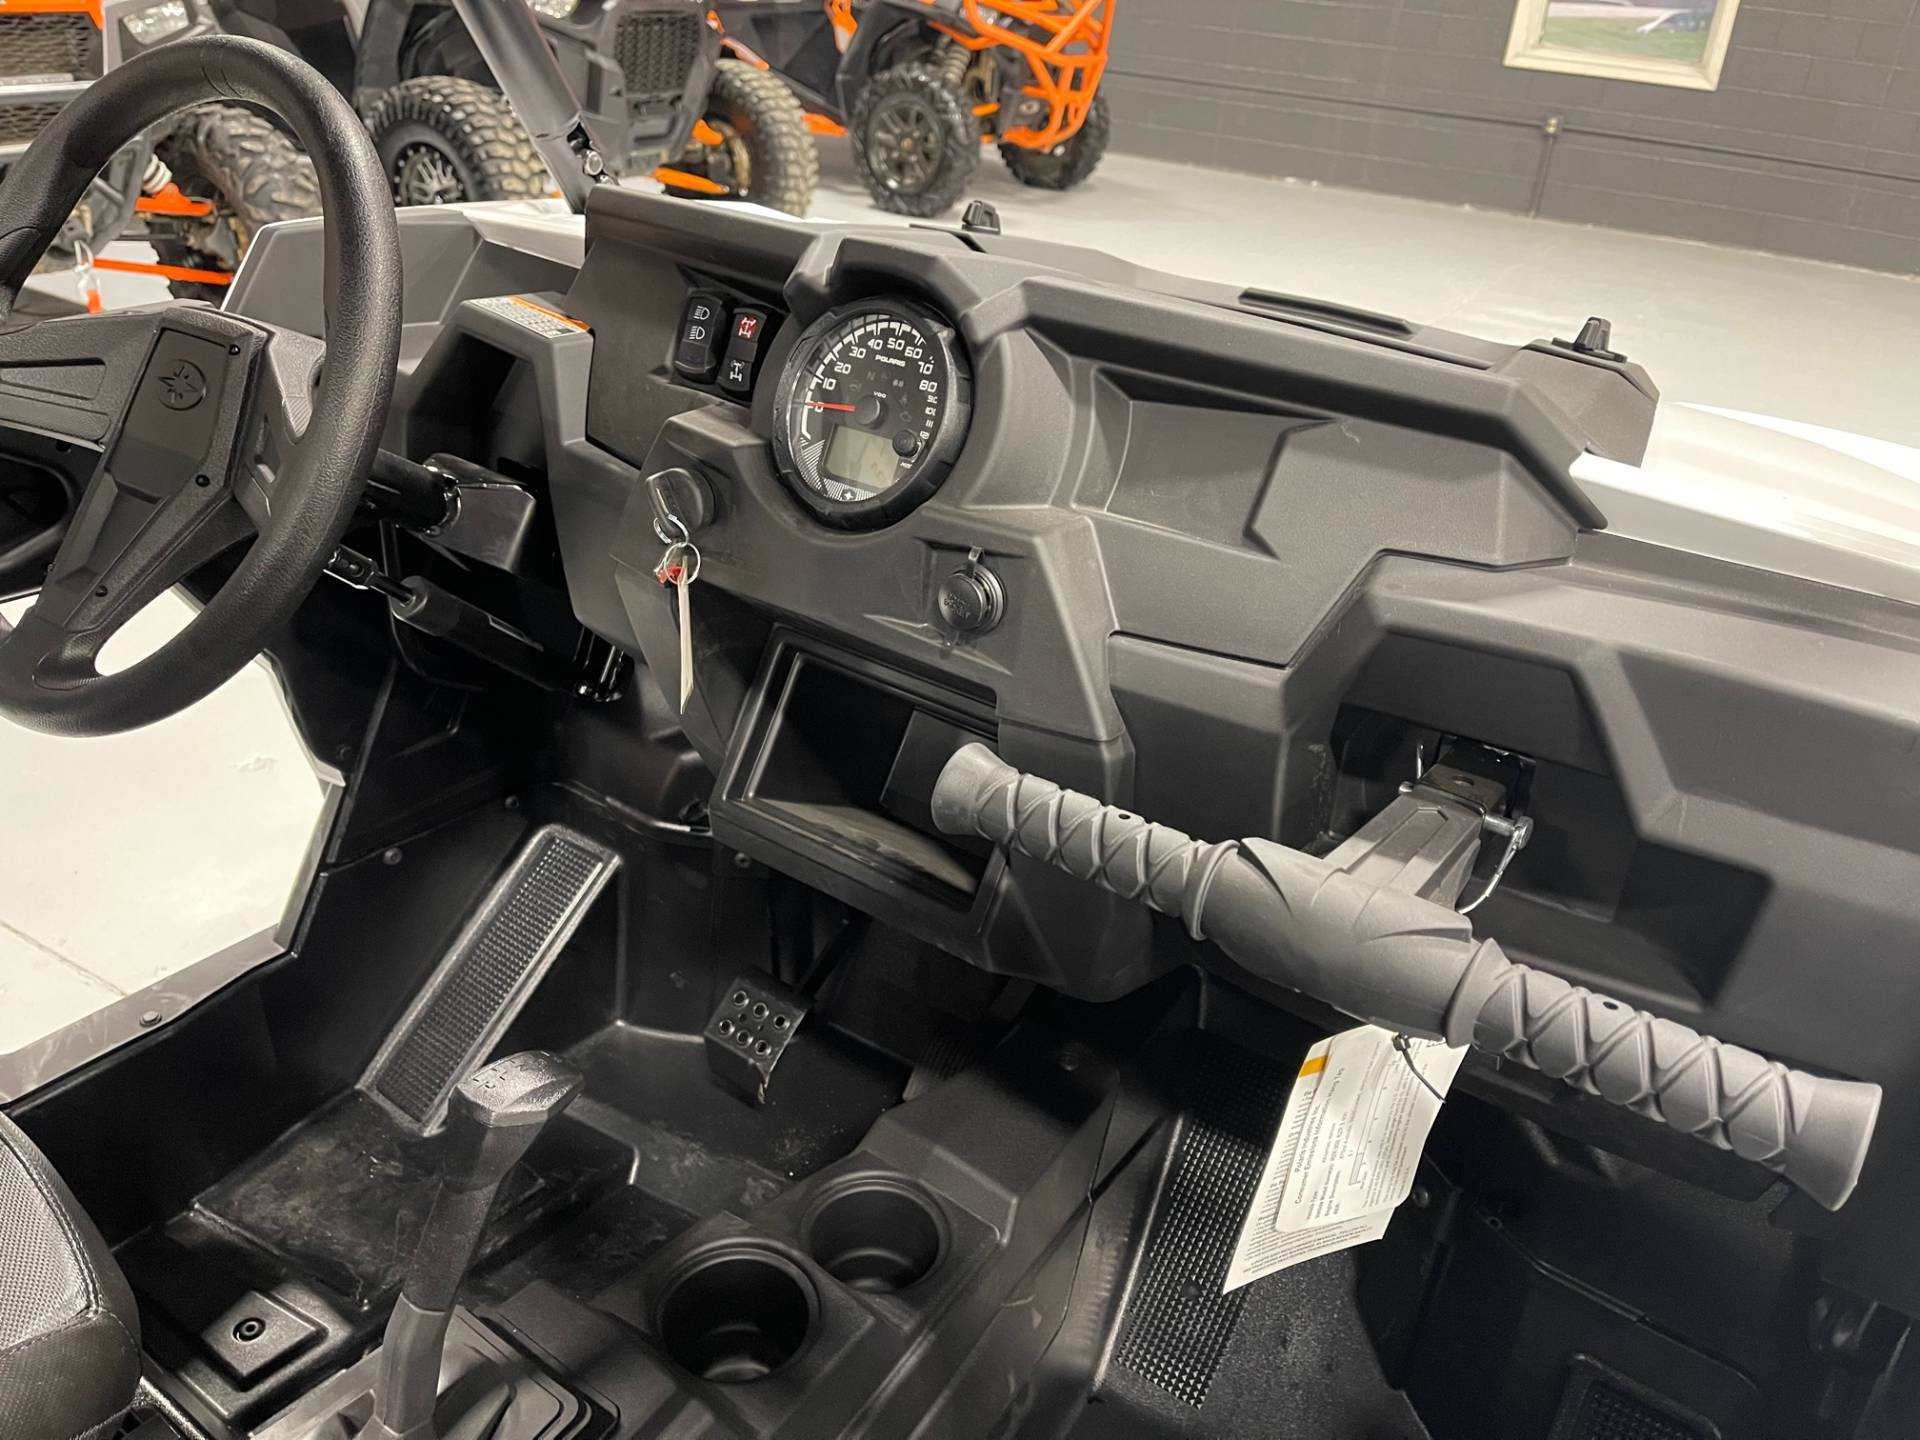 2020 Polaris RZR S 900 in Brilliant, Ohio - Photo 15